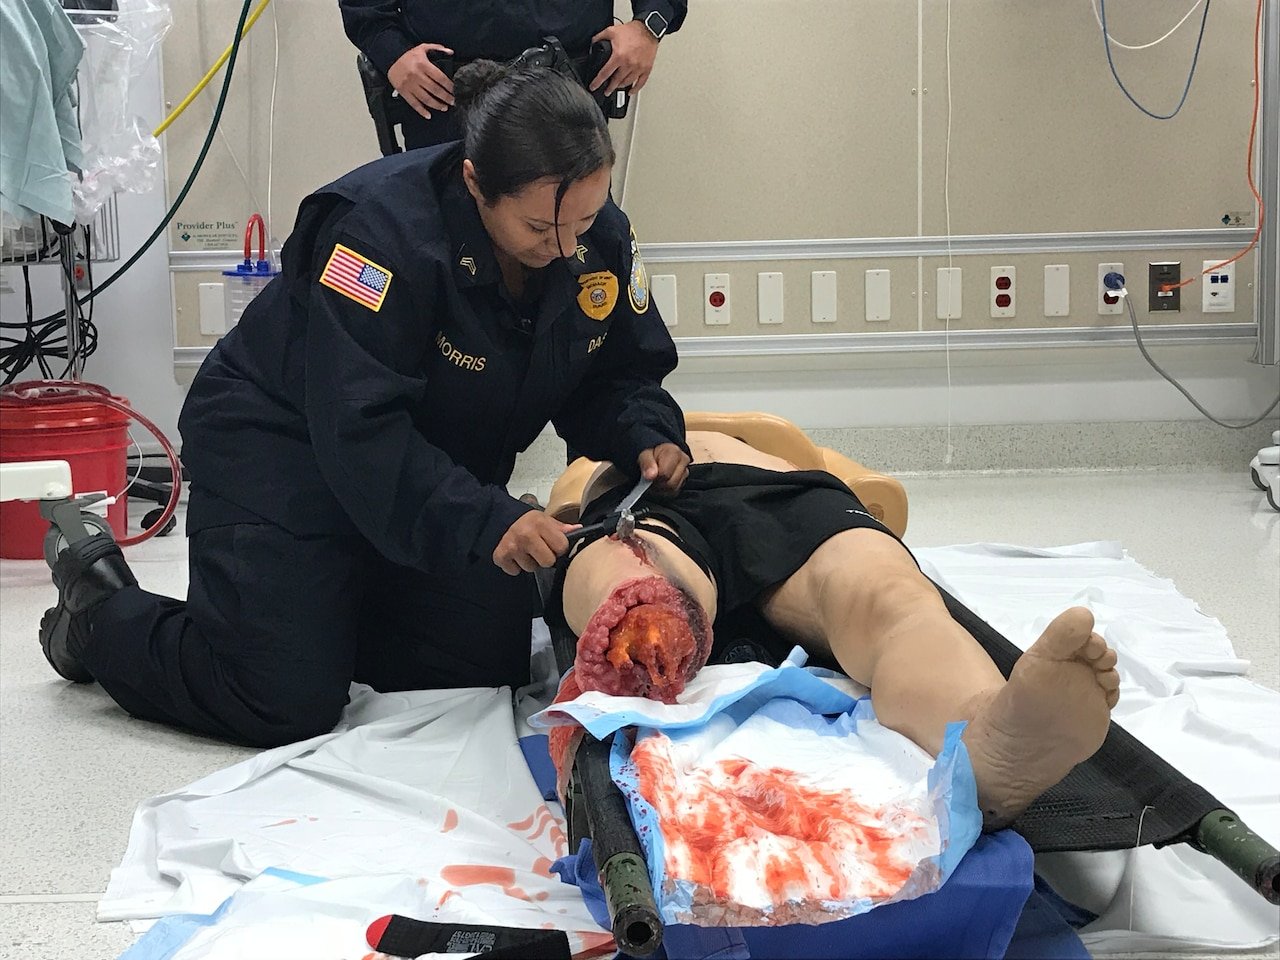 A security officer applies a tourniquet on a simulated casualty.